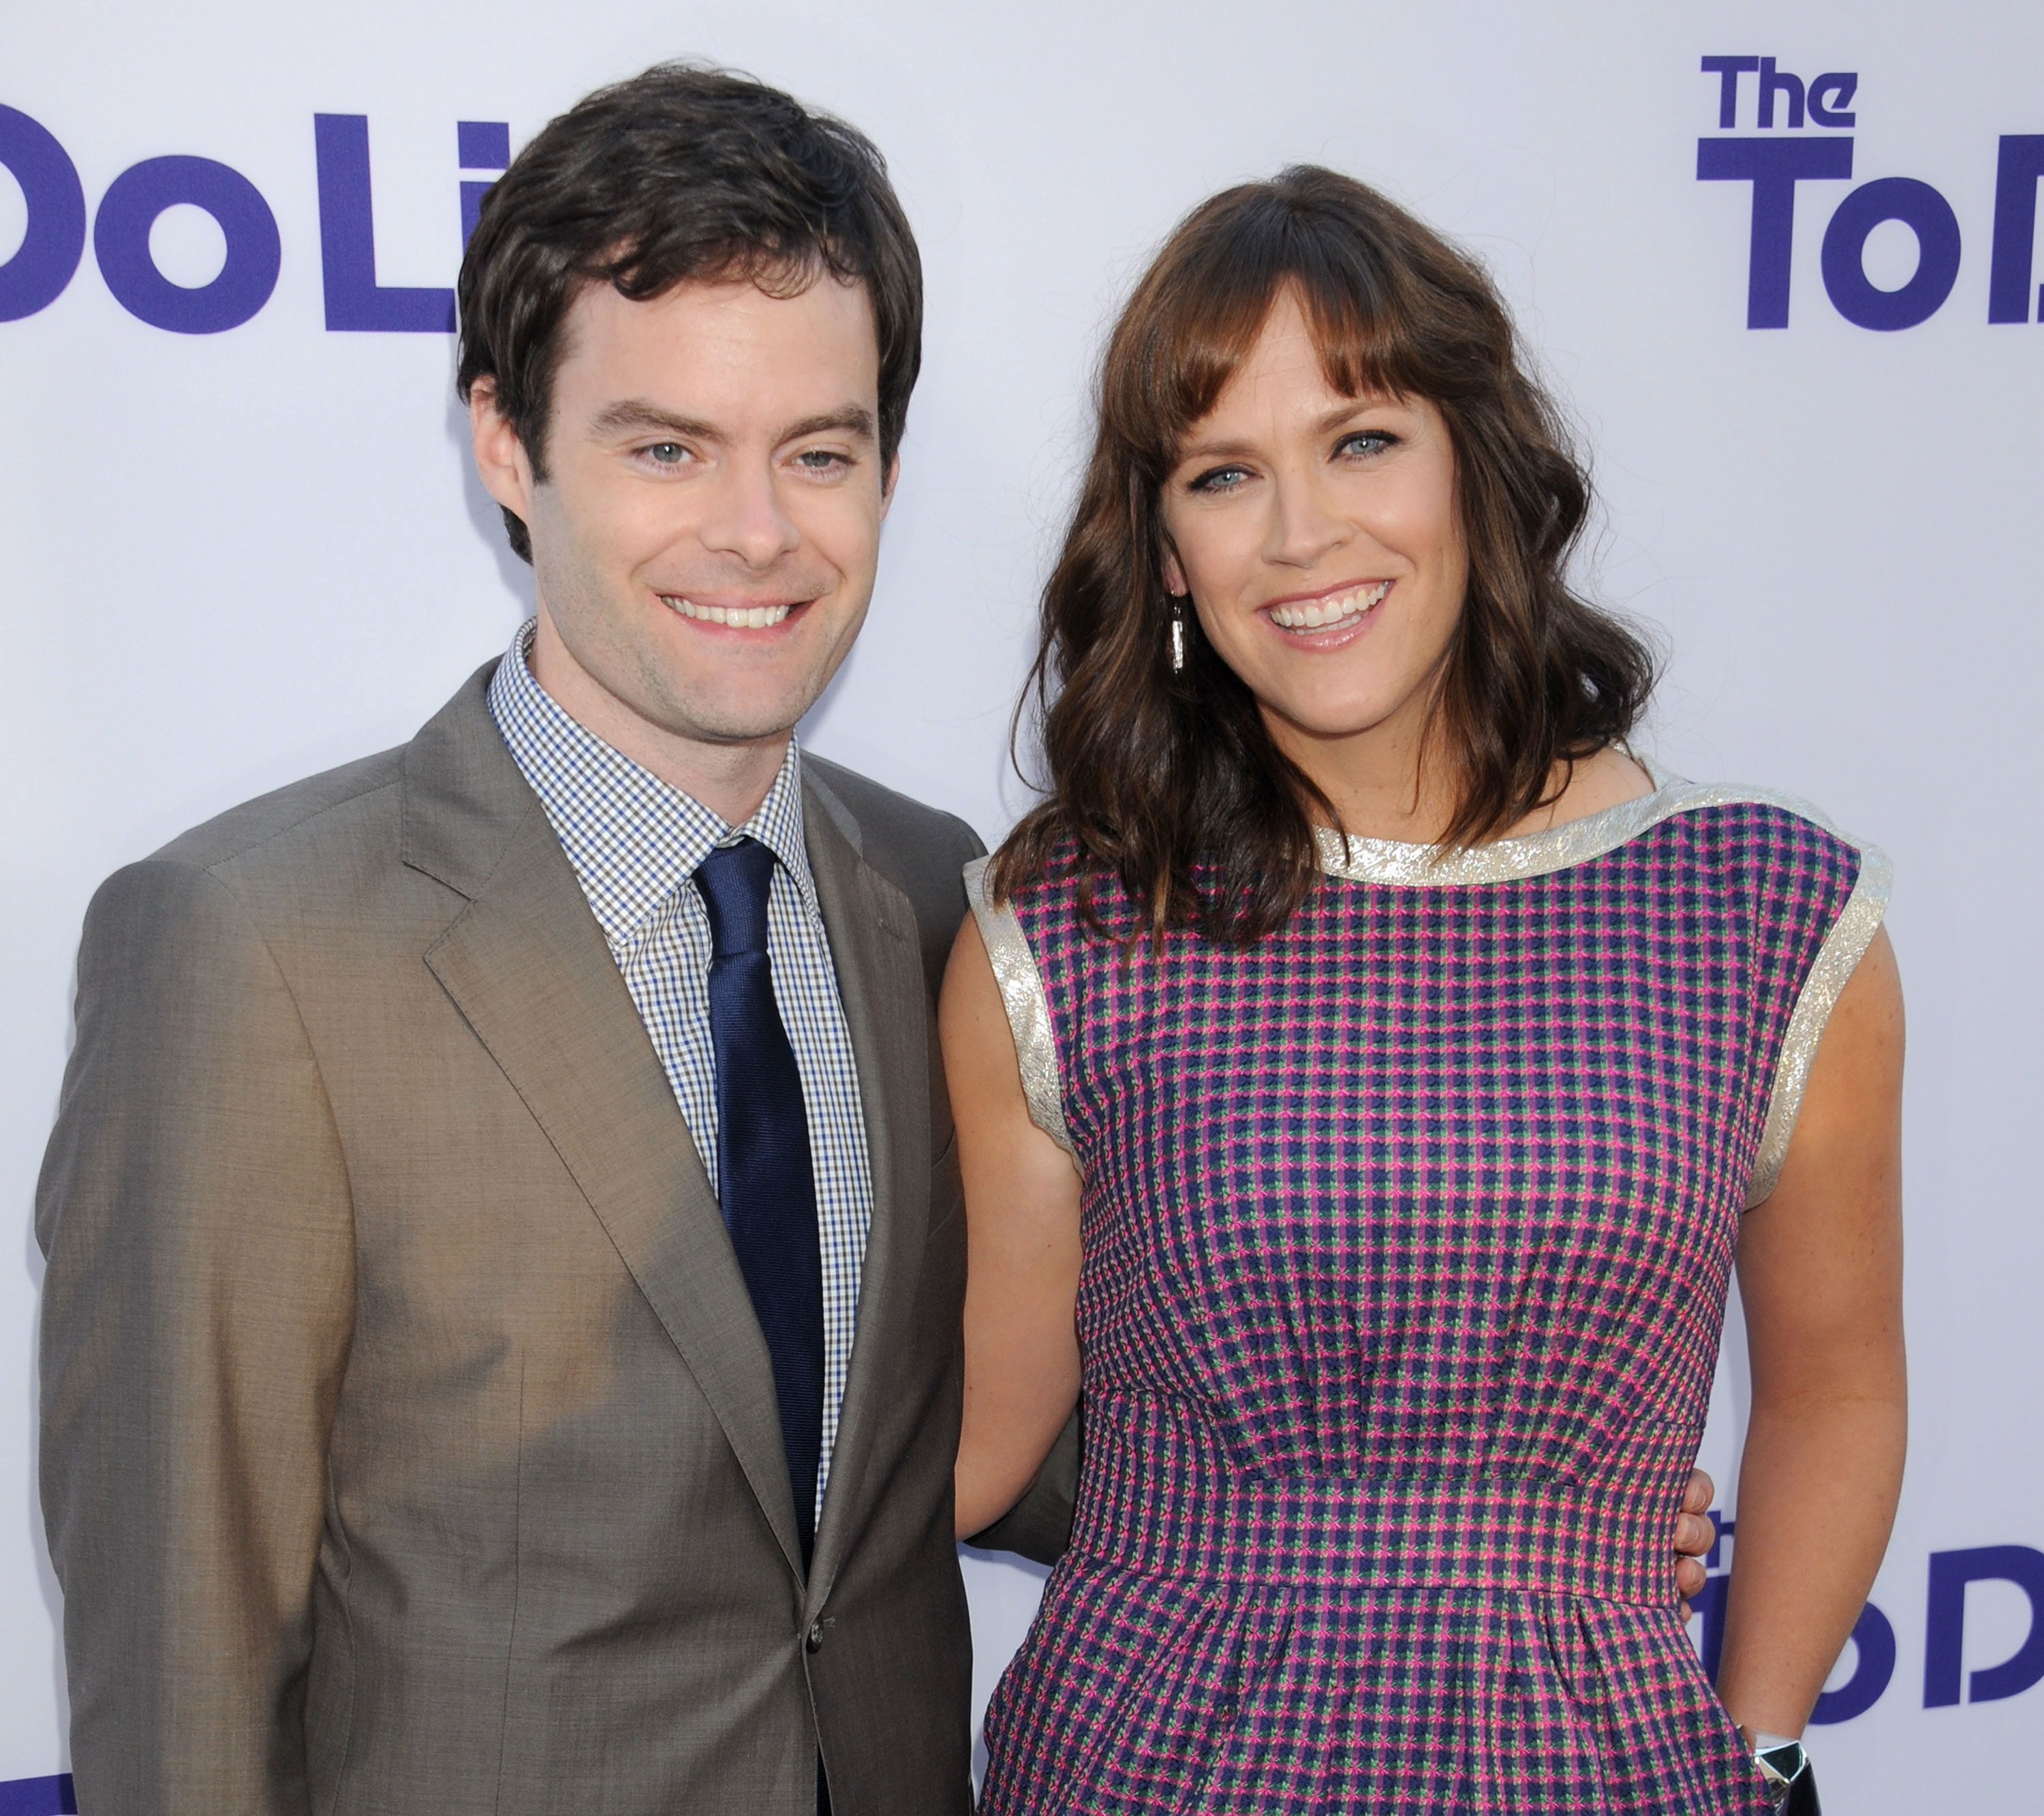 LOS ANGELES, CA - JULY 23:  Actor Bill Hader and director/writer Maggie Carey arrive at the Los Angeles premiere of 'The To Do List' at Regency Bruin Theatre on July 23, 2013 in Los Angeles, California.  (Photo by Gregg DeGuire/WireImage)